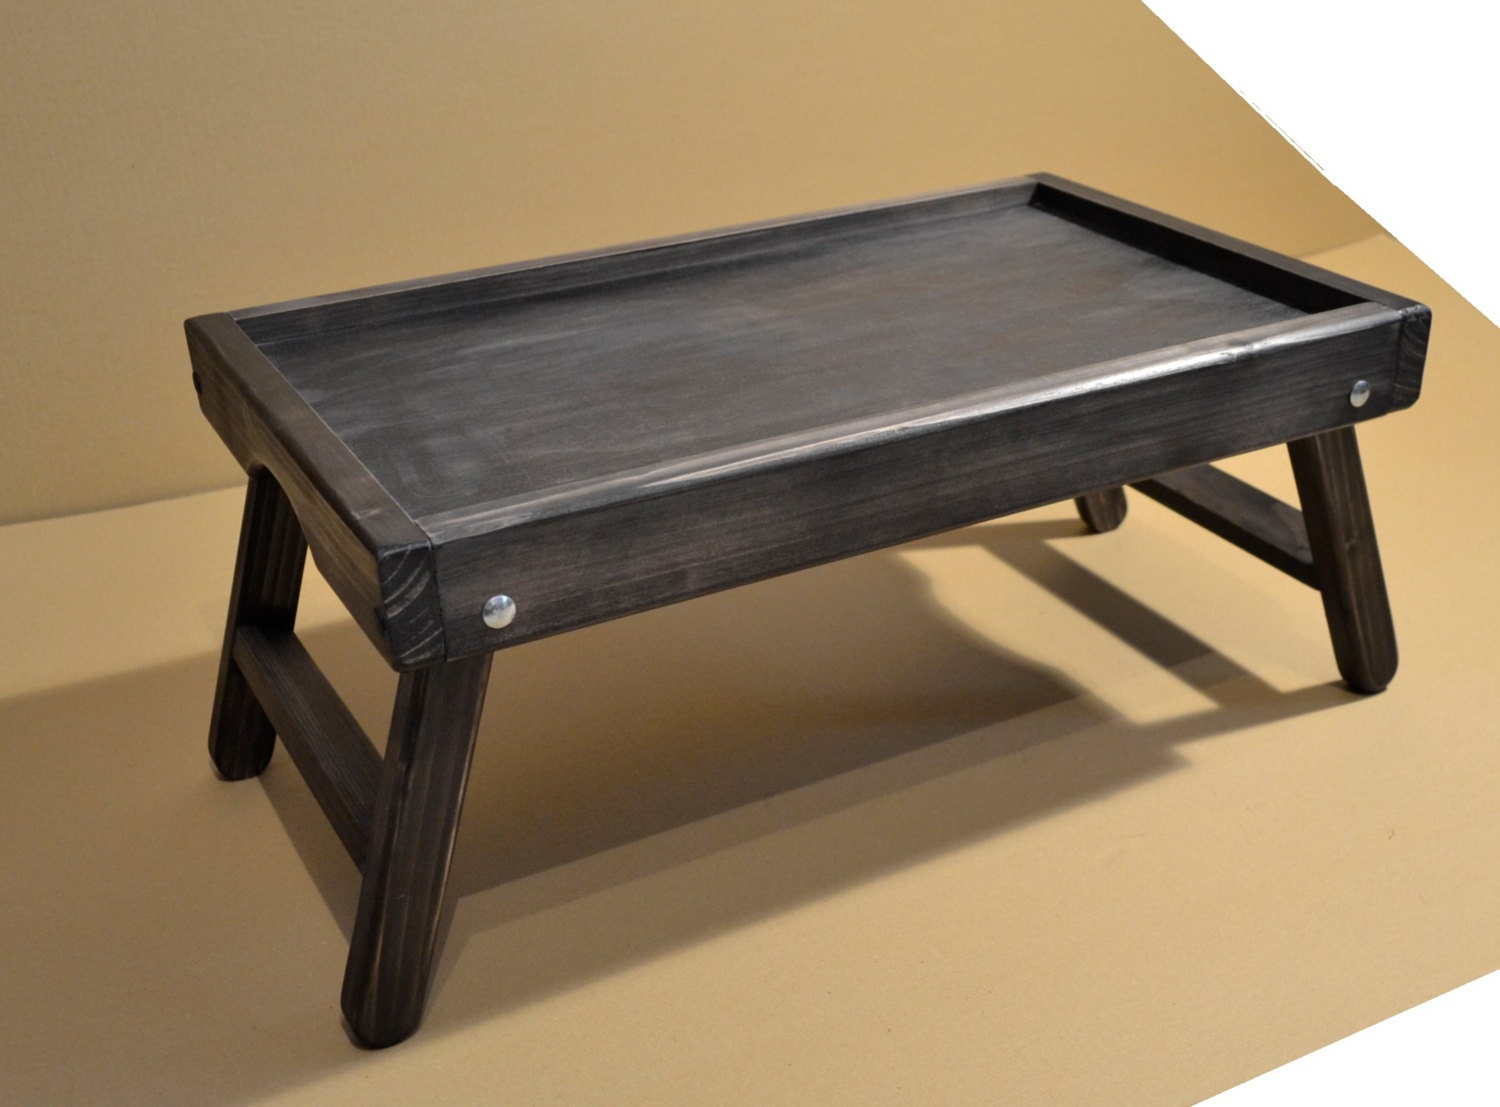 Very Impressive portraiture of Rustic Wooden Laptop Table / Computer Table / Breakfast by ArtViks with #987033 color and 1500x1107 pixels